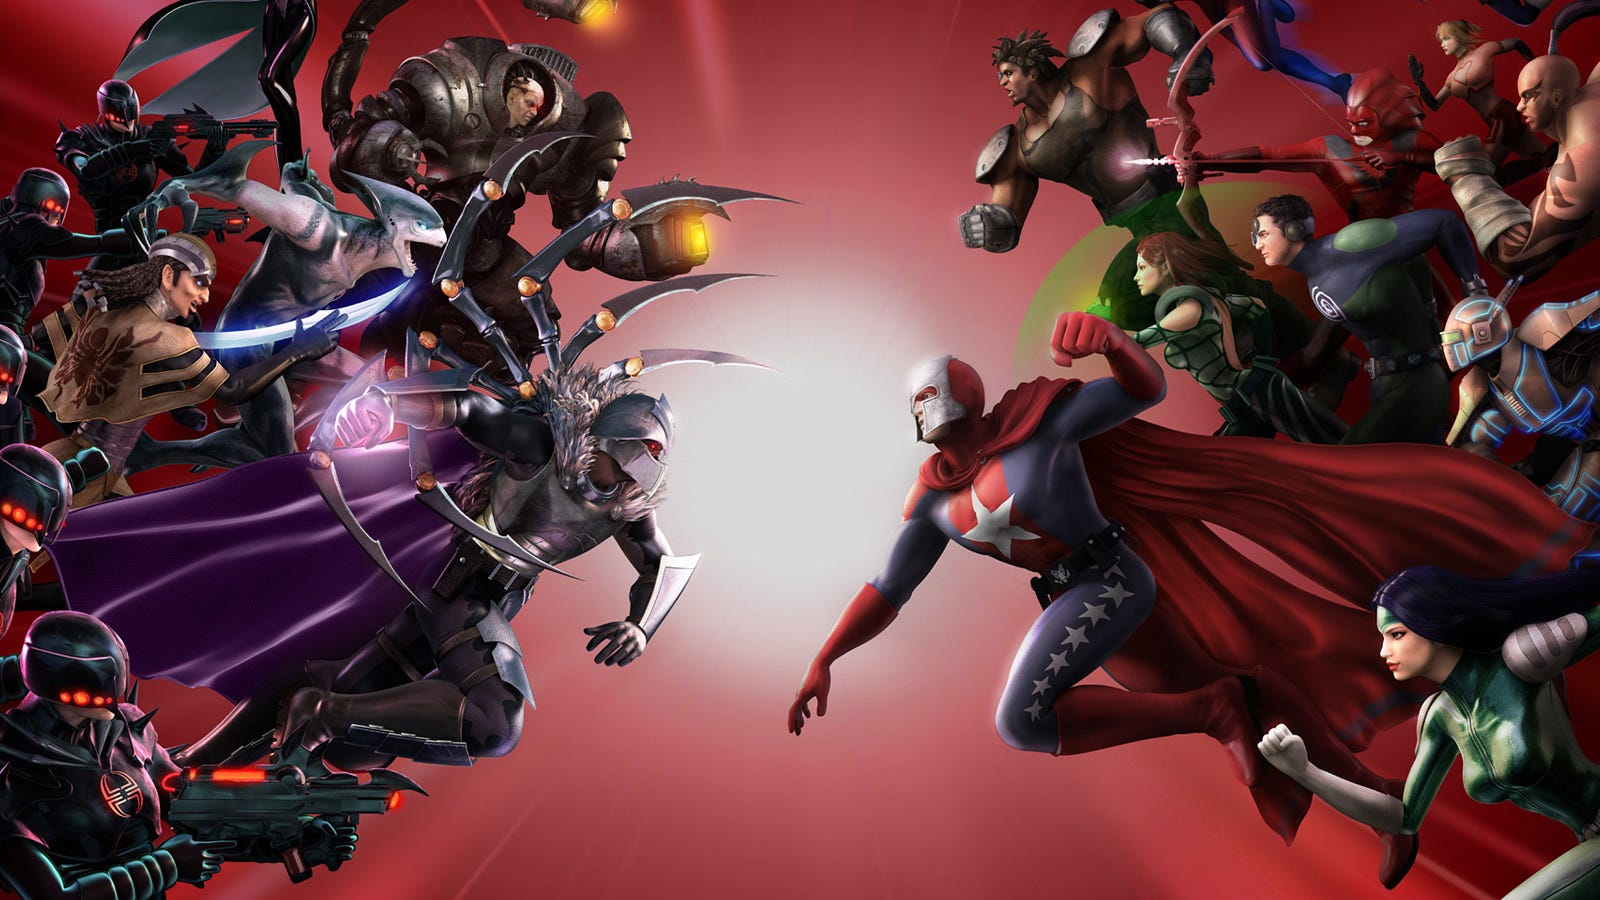 QnA VBage Discovery Of A Secret, Fan-Run City Of Heroes Server Causes A Community Meltdown